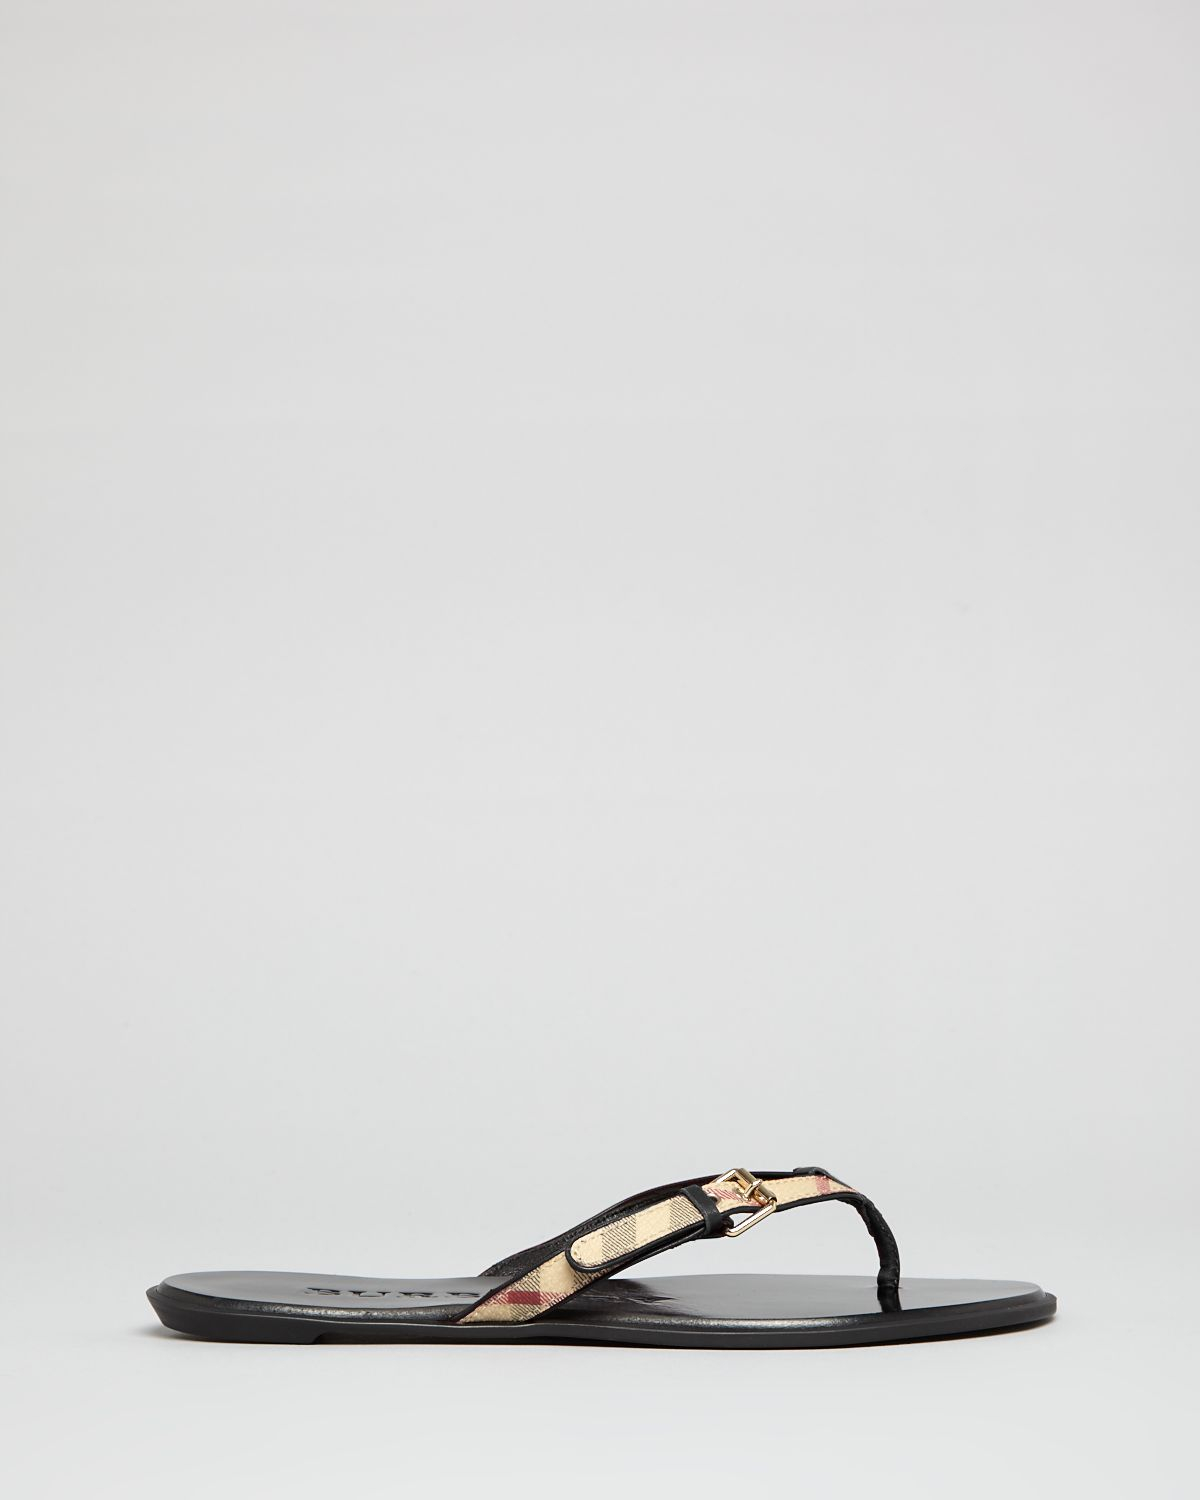 afe77313351 Lyst - Burberry Flip Flop Sandals Parsons Check Thong in Metallic